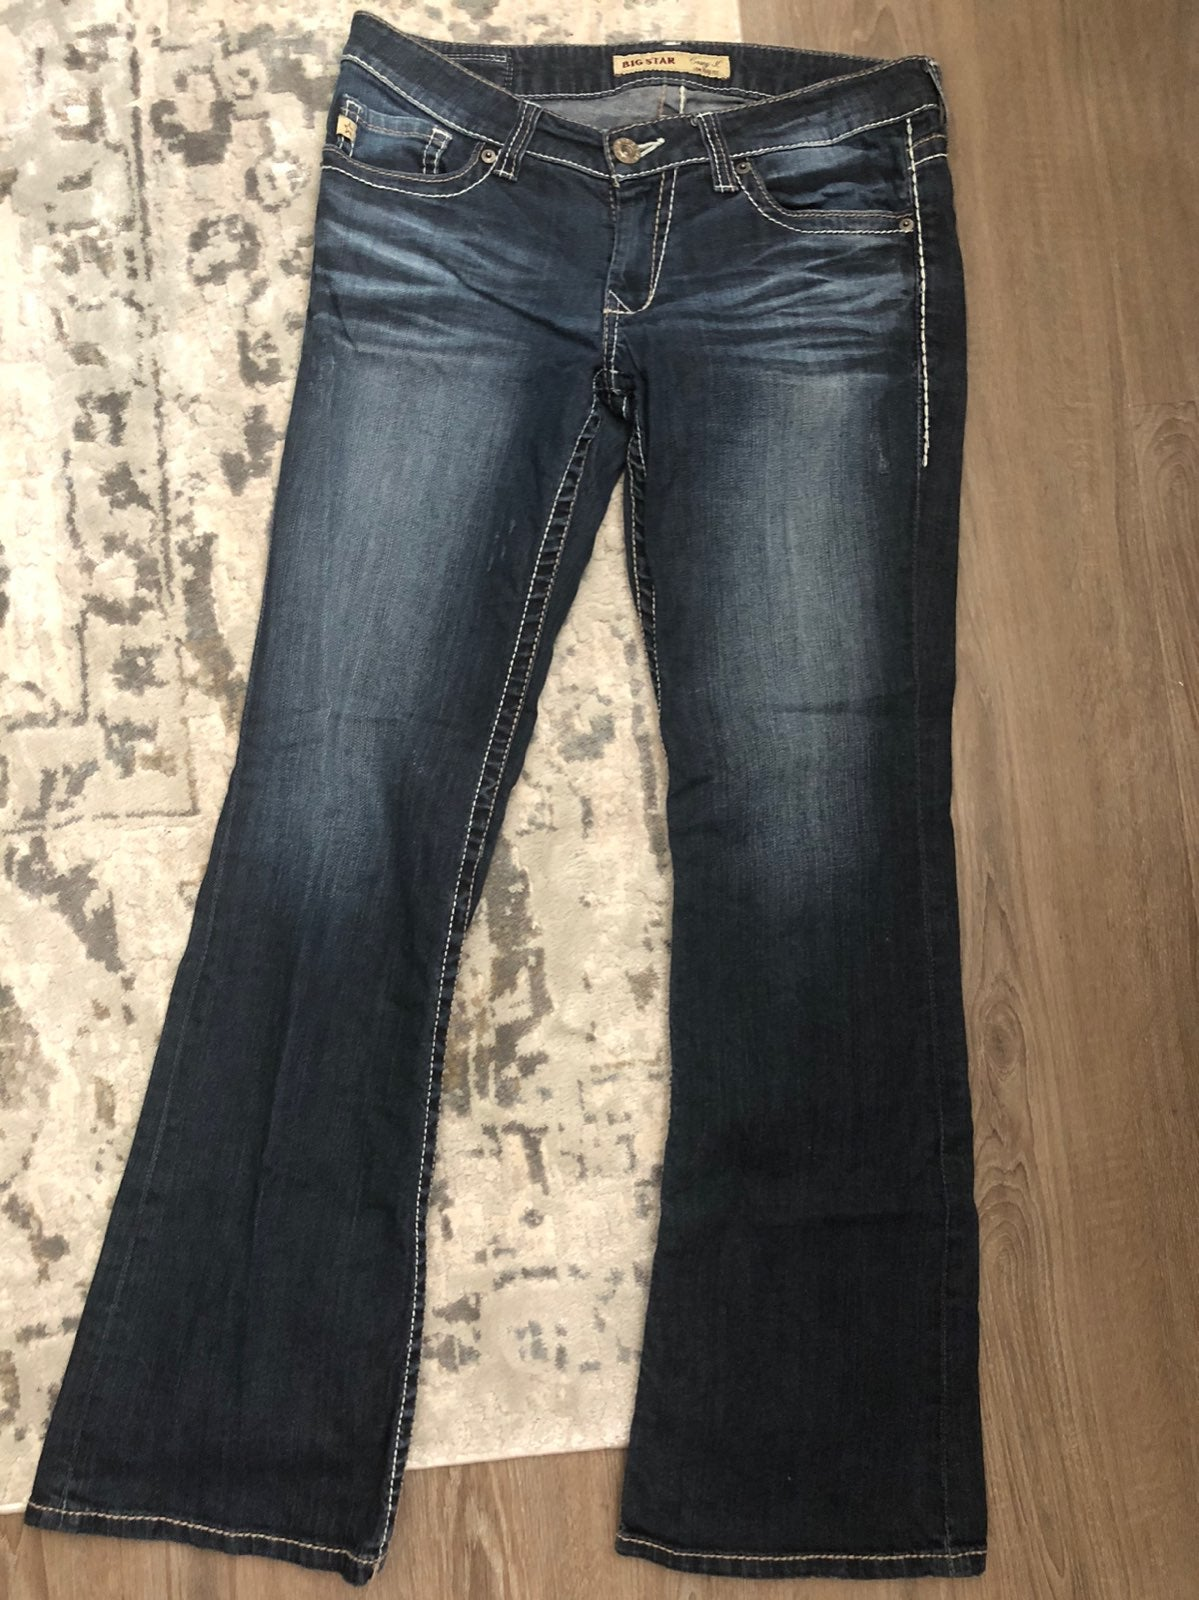 29R Big Star Jeans ONLY